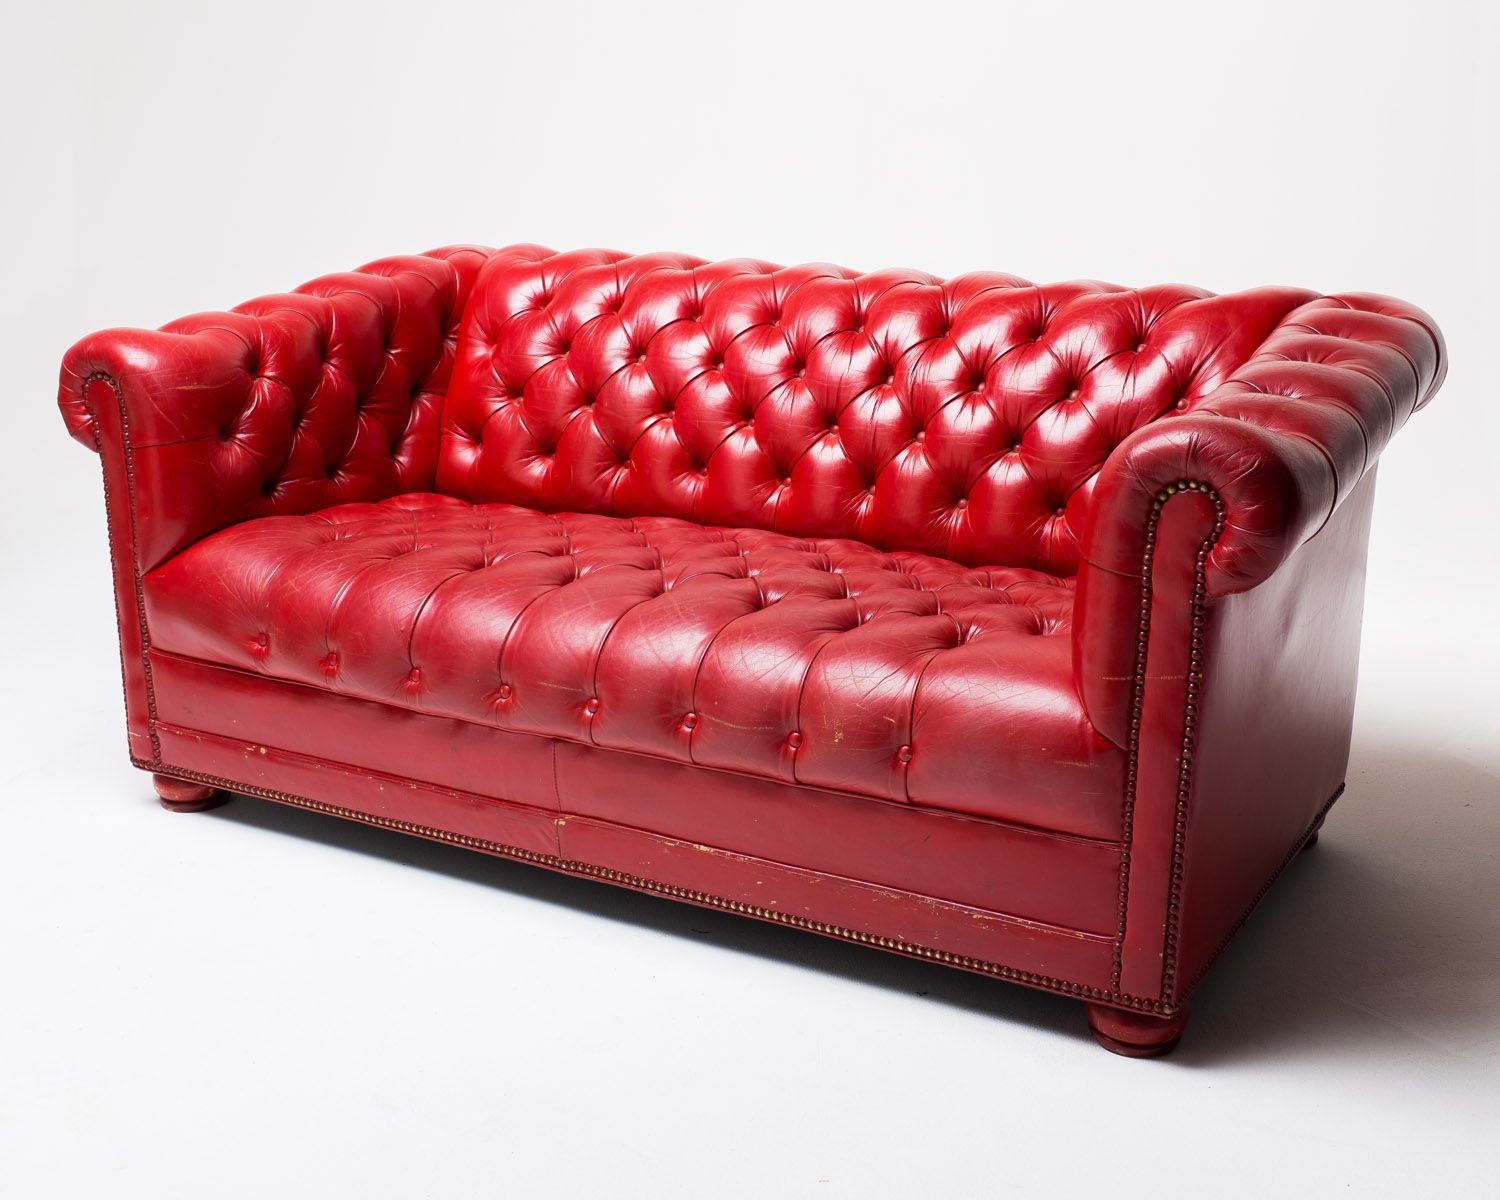 Co002 Red Leather Sofa Red Leather Sofa Leather Sofa Furniture